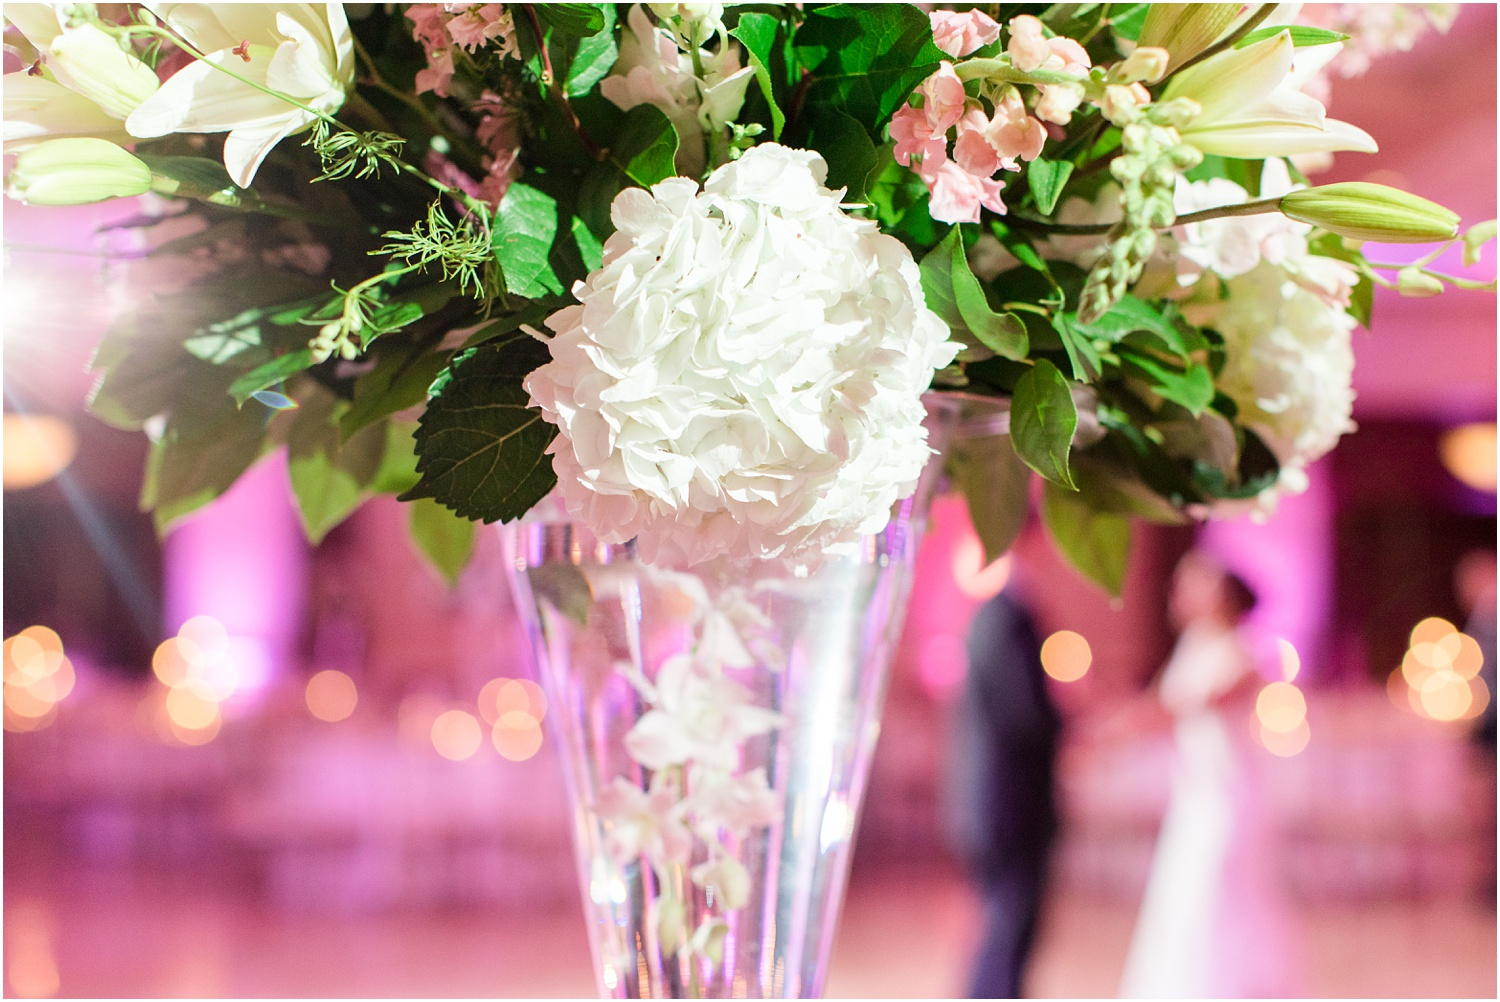 Wedding reception decor with pink uplighting at South Gate Manor in Freehold.